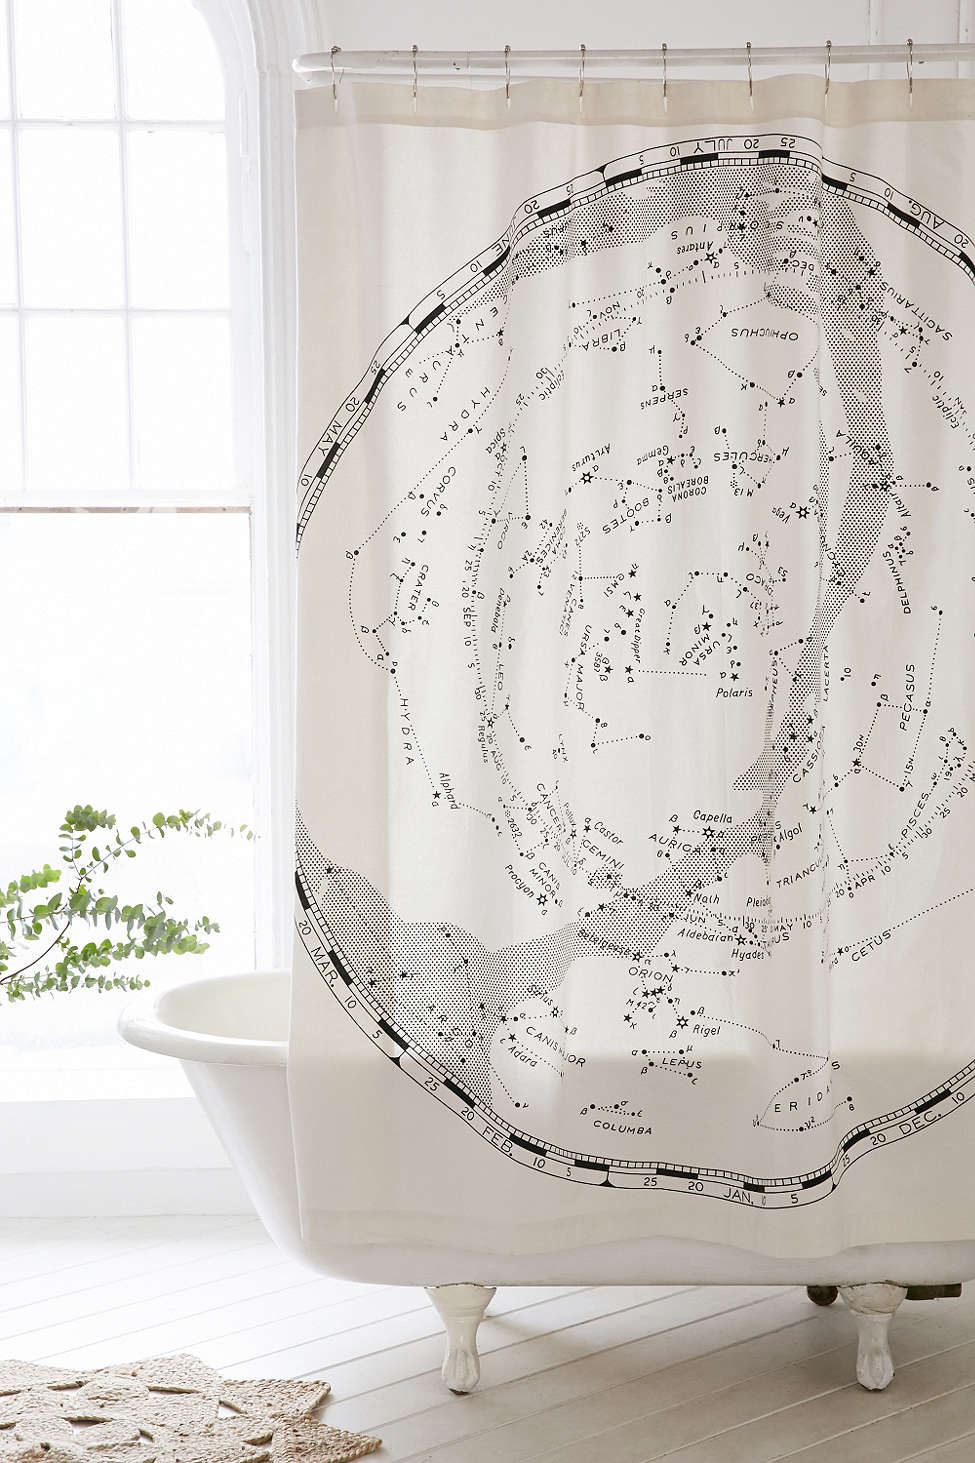 Furniture Finds Magical Thinking Constellation Map Shower Curtain regarding dimensions 975 X 1463